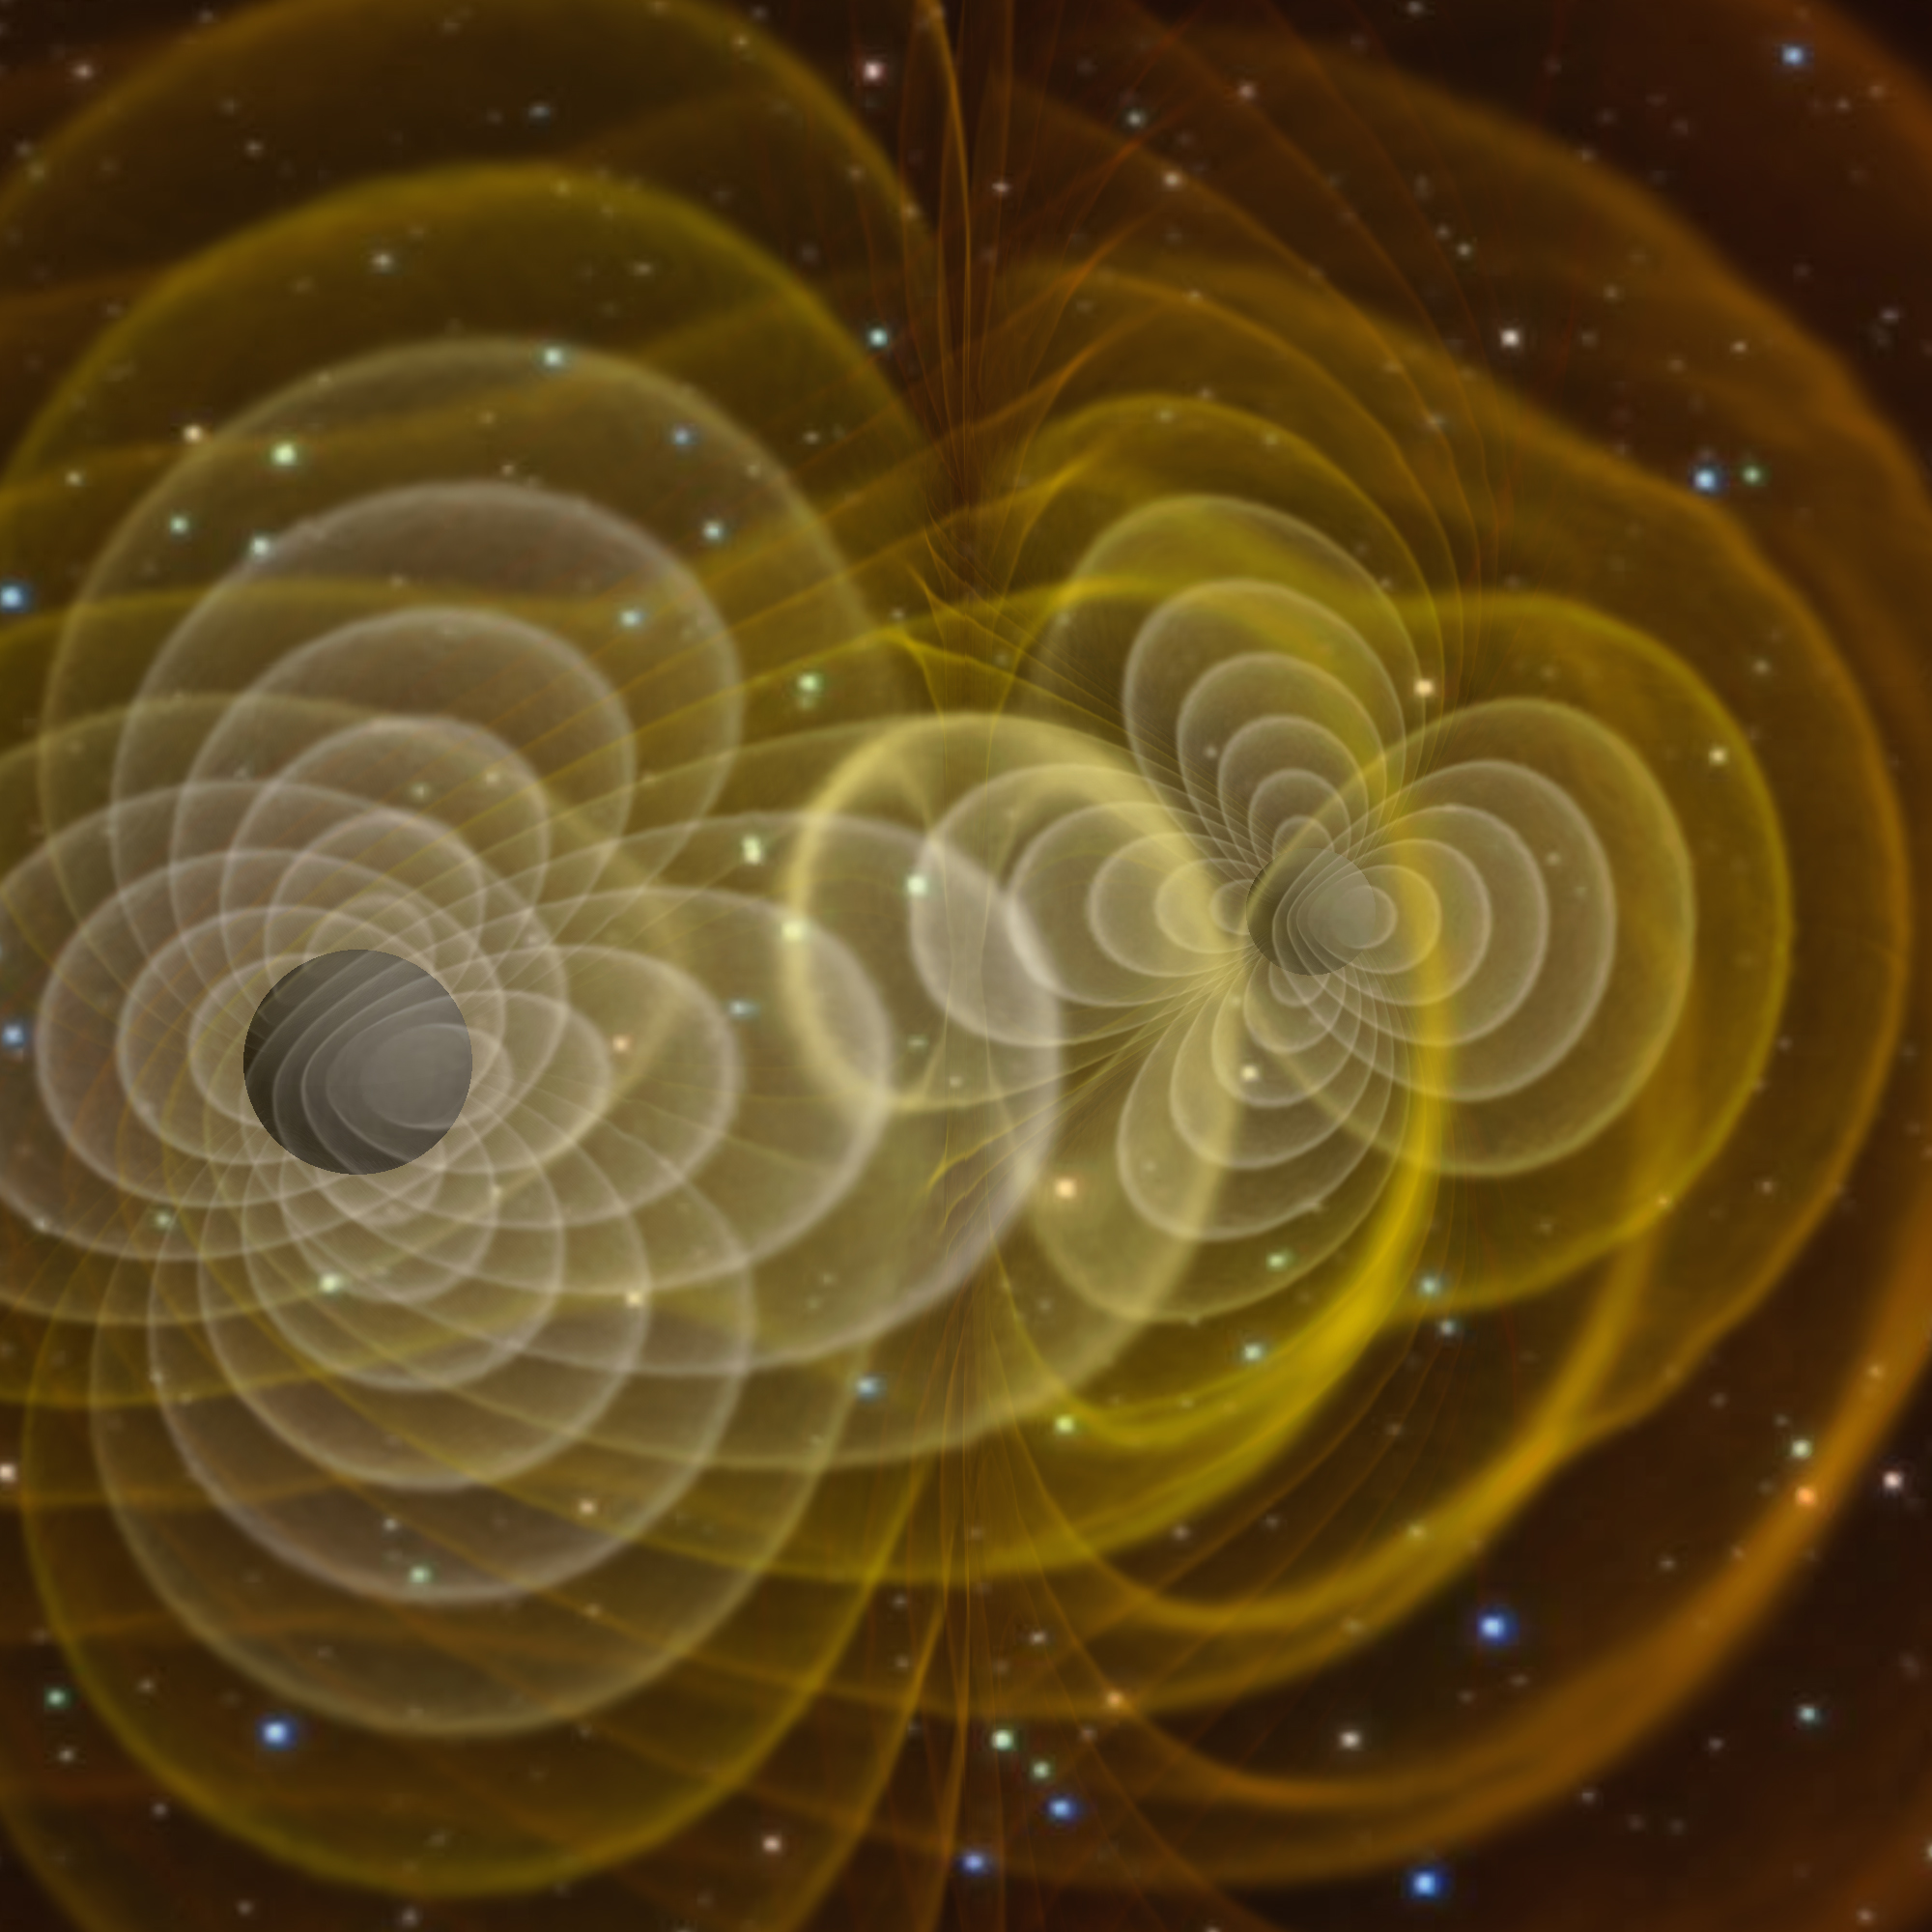 Gravitational waves produced by 2 orbiting black holes